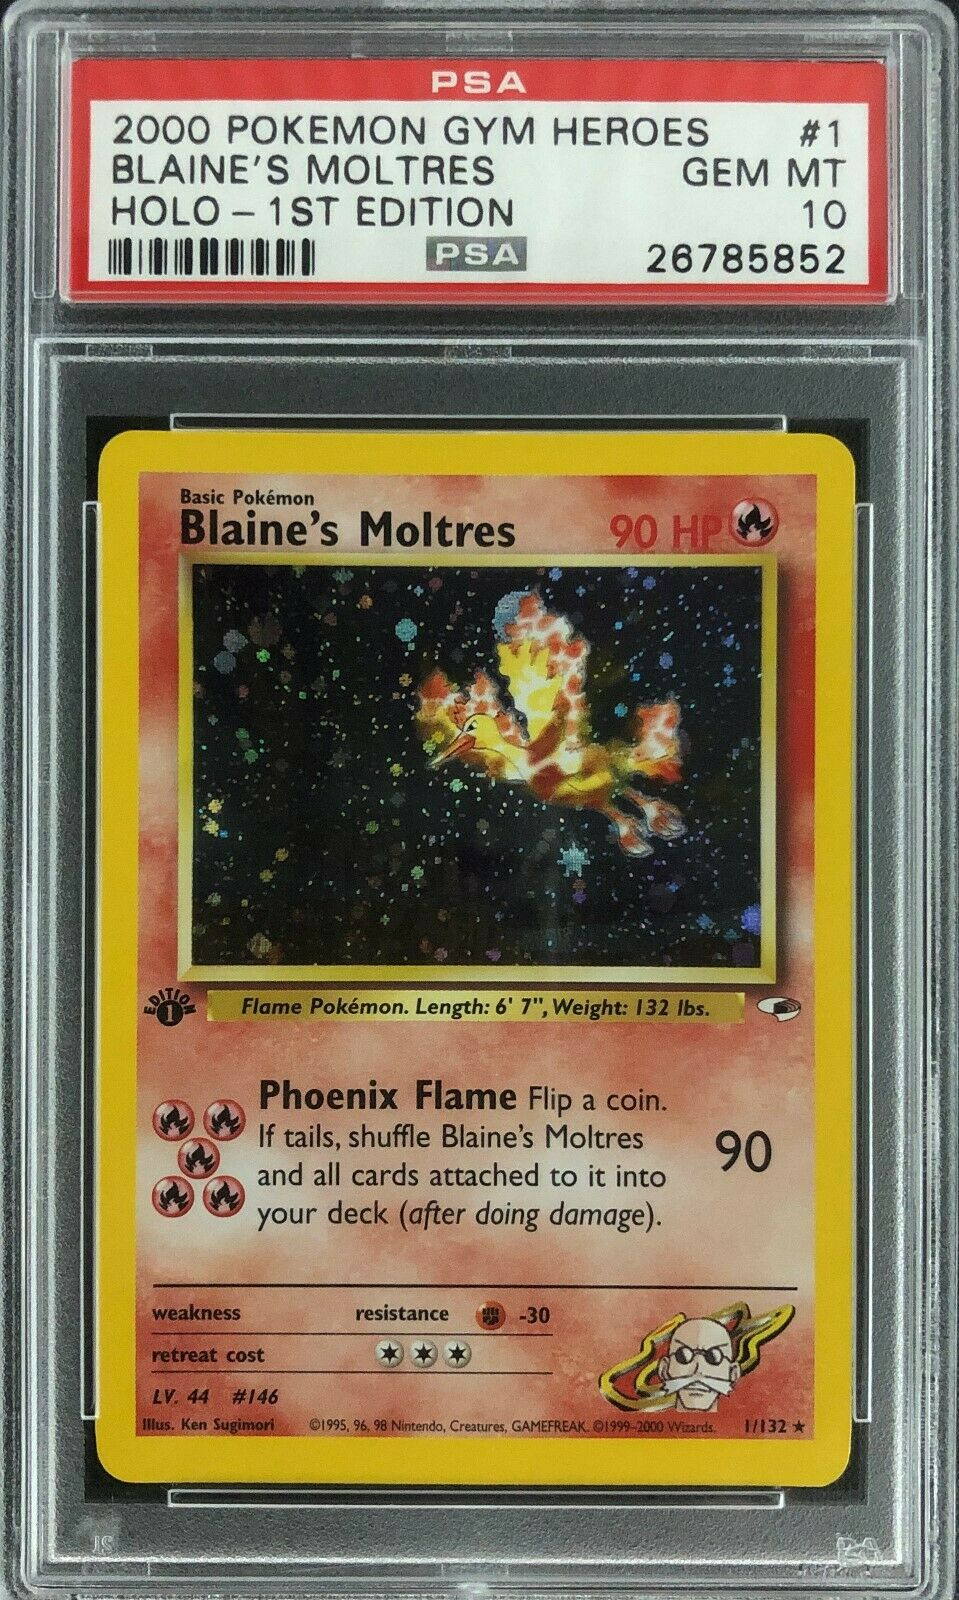 1st Edition Gym Heroes Blaines Moltres Holo Pokemon Card Mint PSA 10